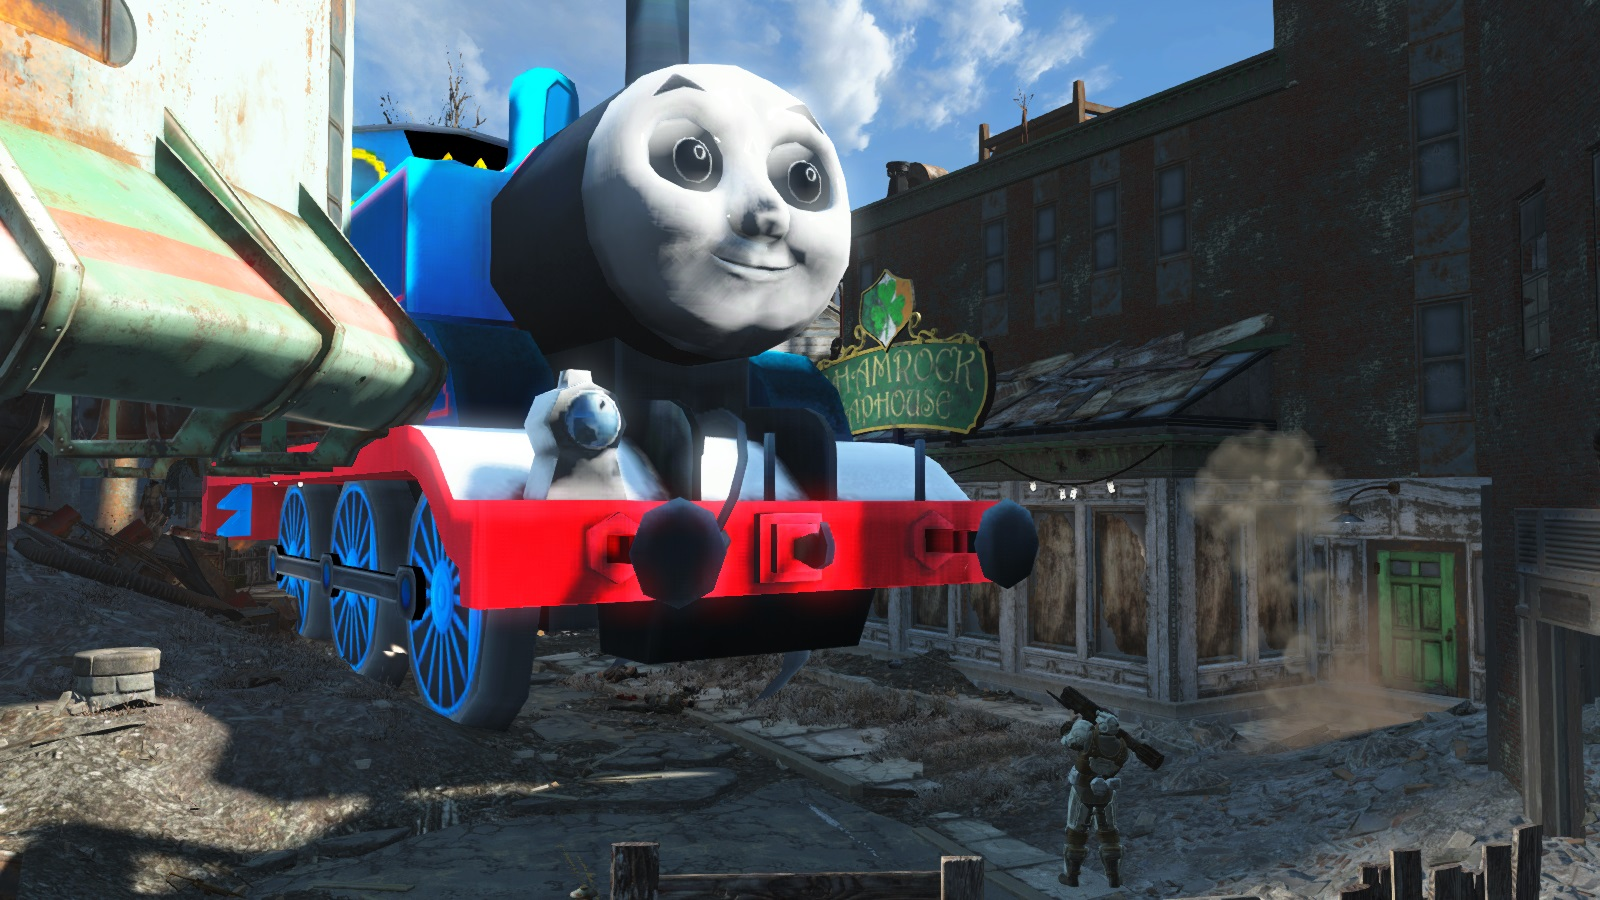 Fallout 4 Mod Replaces Most Things With Thomas The Tank Engine VG247